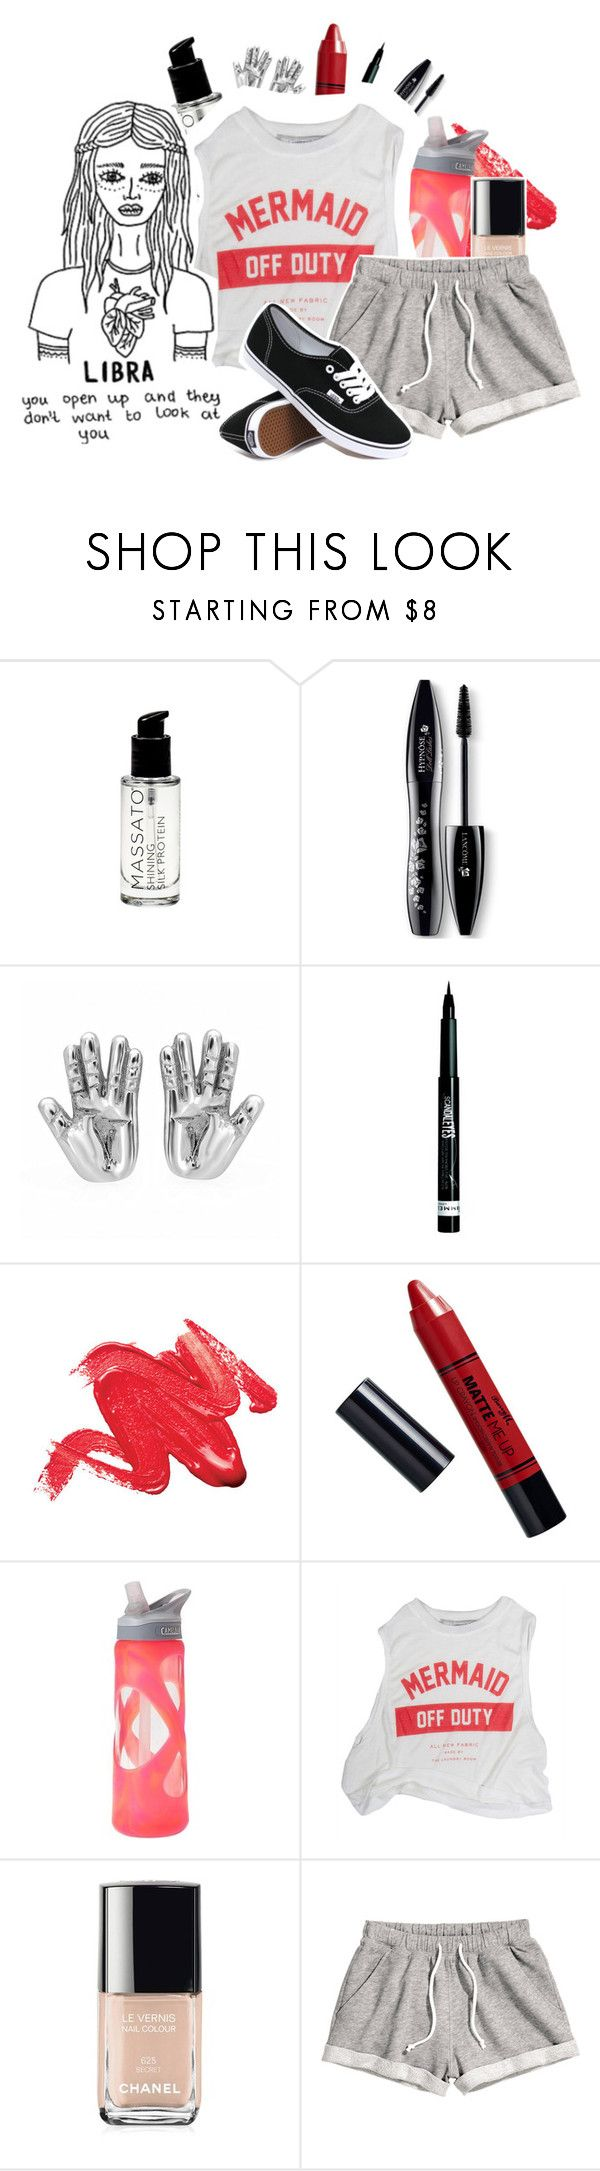 """Libra"" by northernbloom ❤ liked on Polyvore featuring Lancôme, Rimmel, Barry M, CamelBak, Chanel, H&M and Vans"